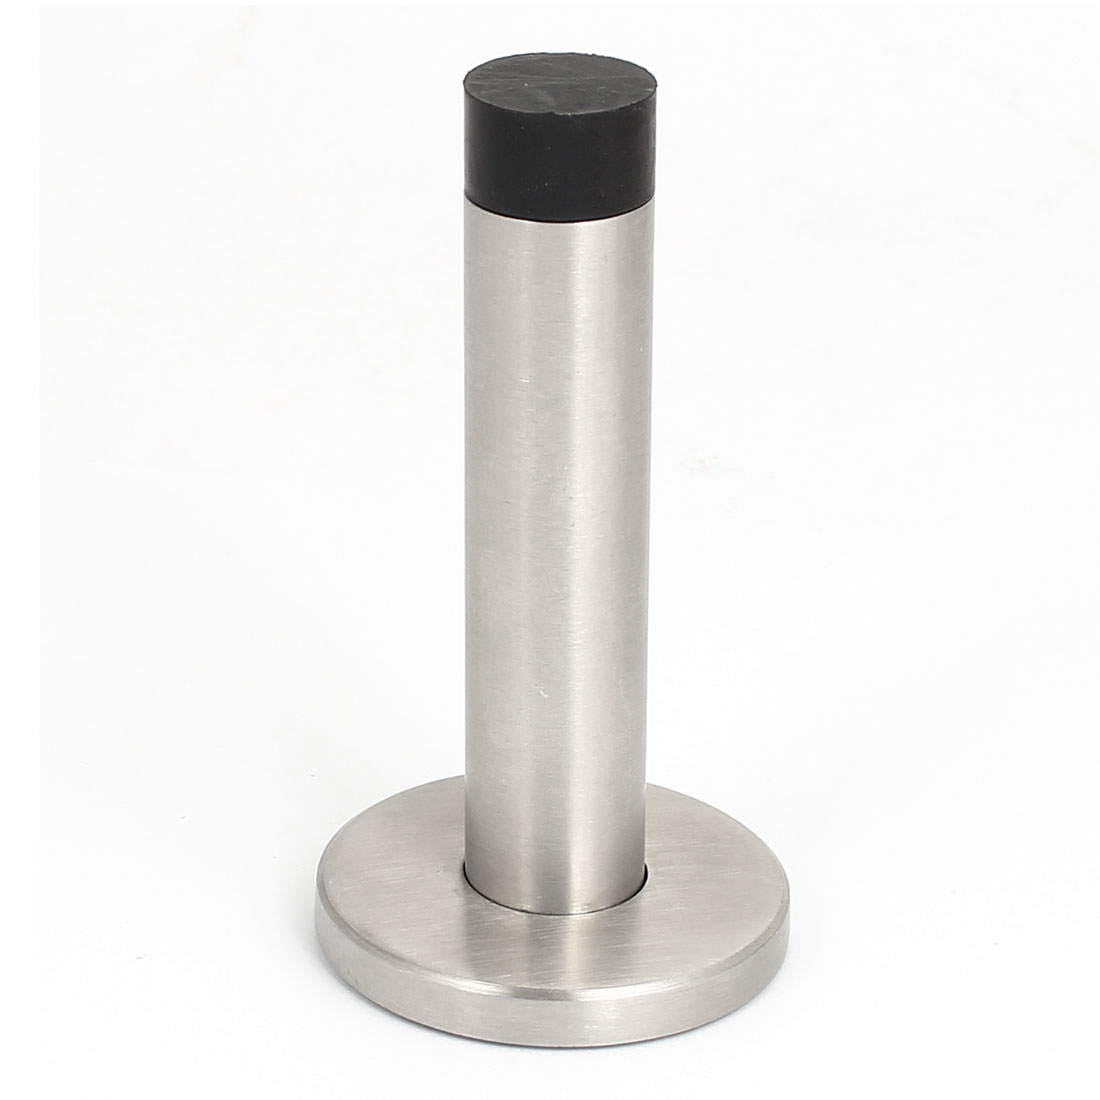 Brushed Stainless Steel Rubber Door Stop Stopper Wedge Security Bar Holder